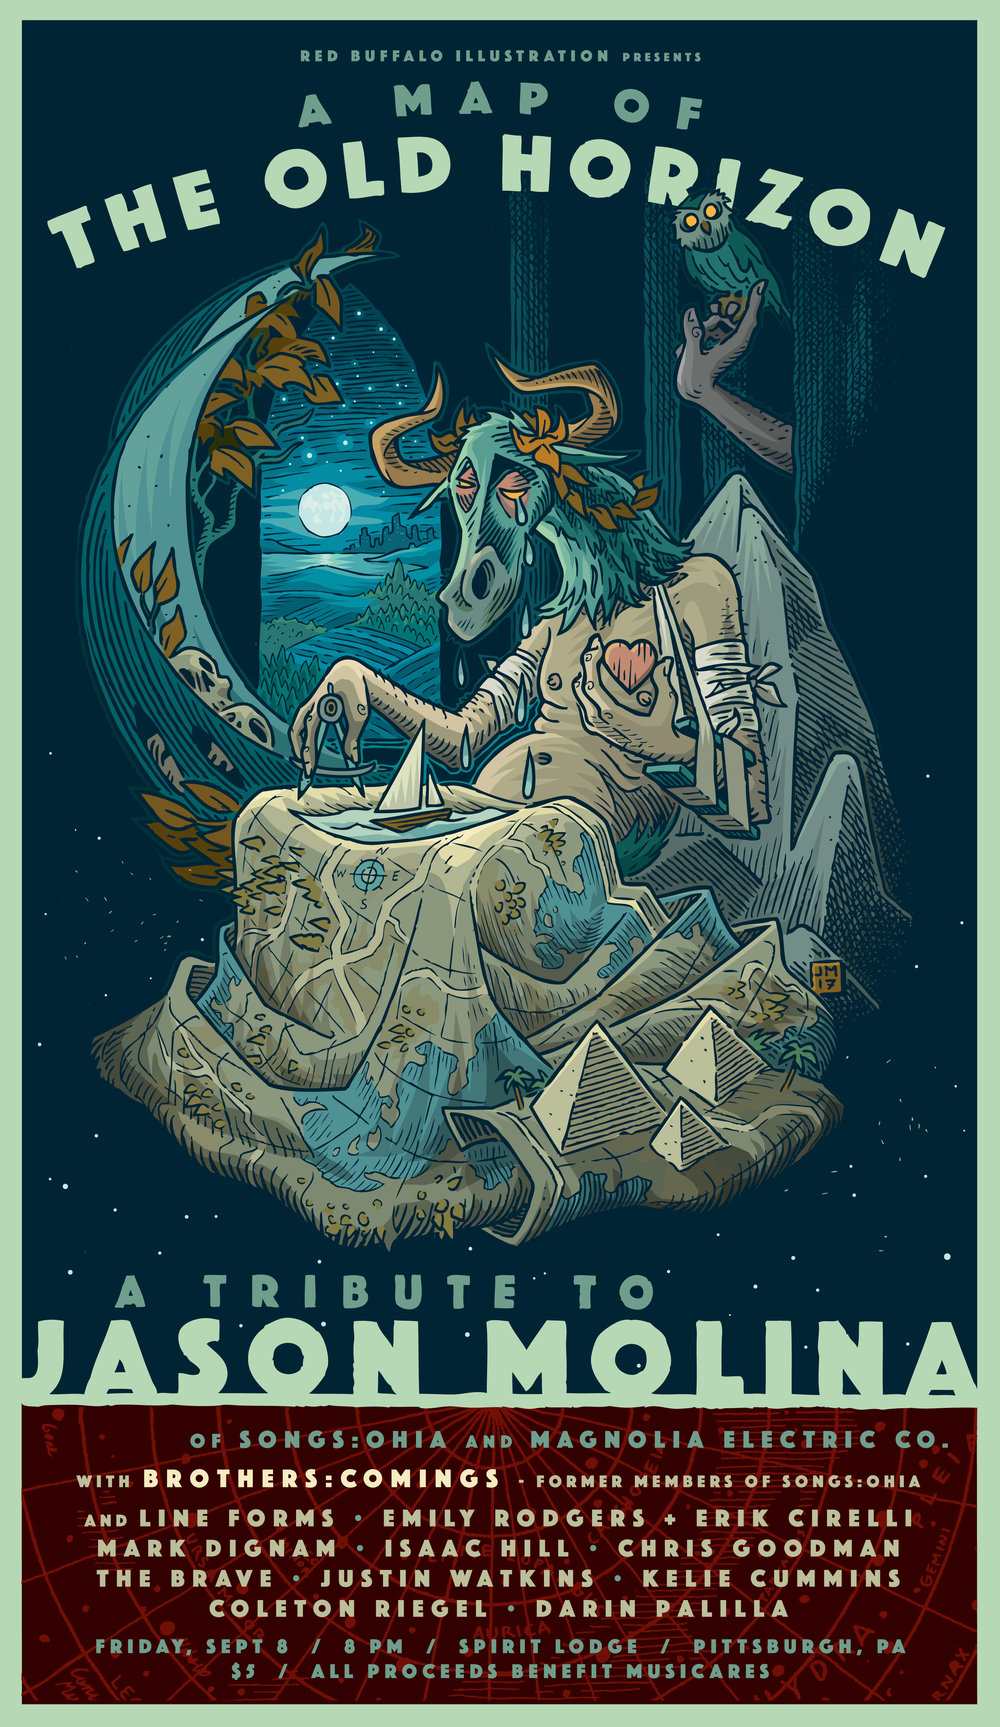 Jason Molina Tribute Show.jpg